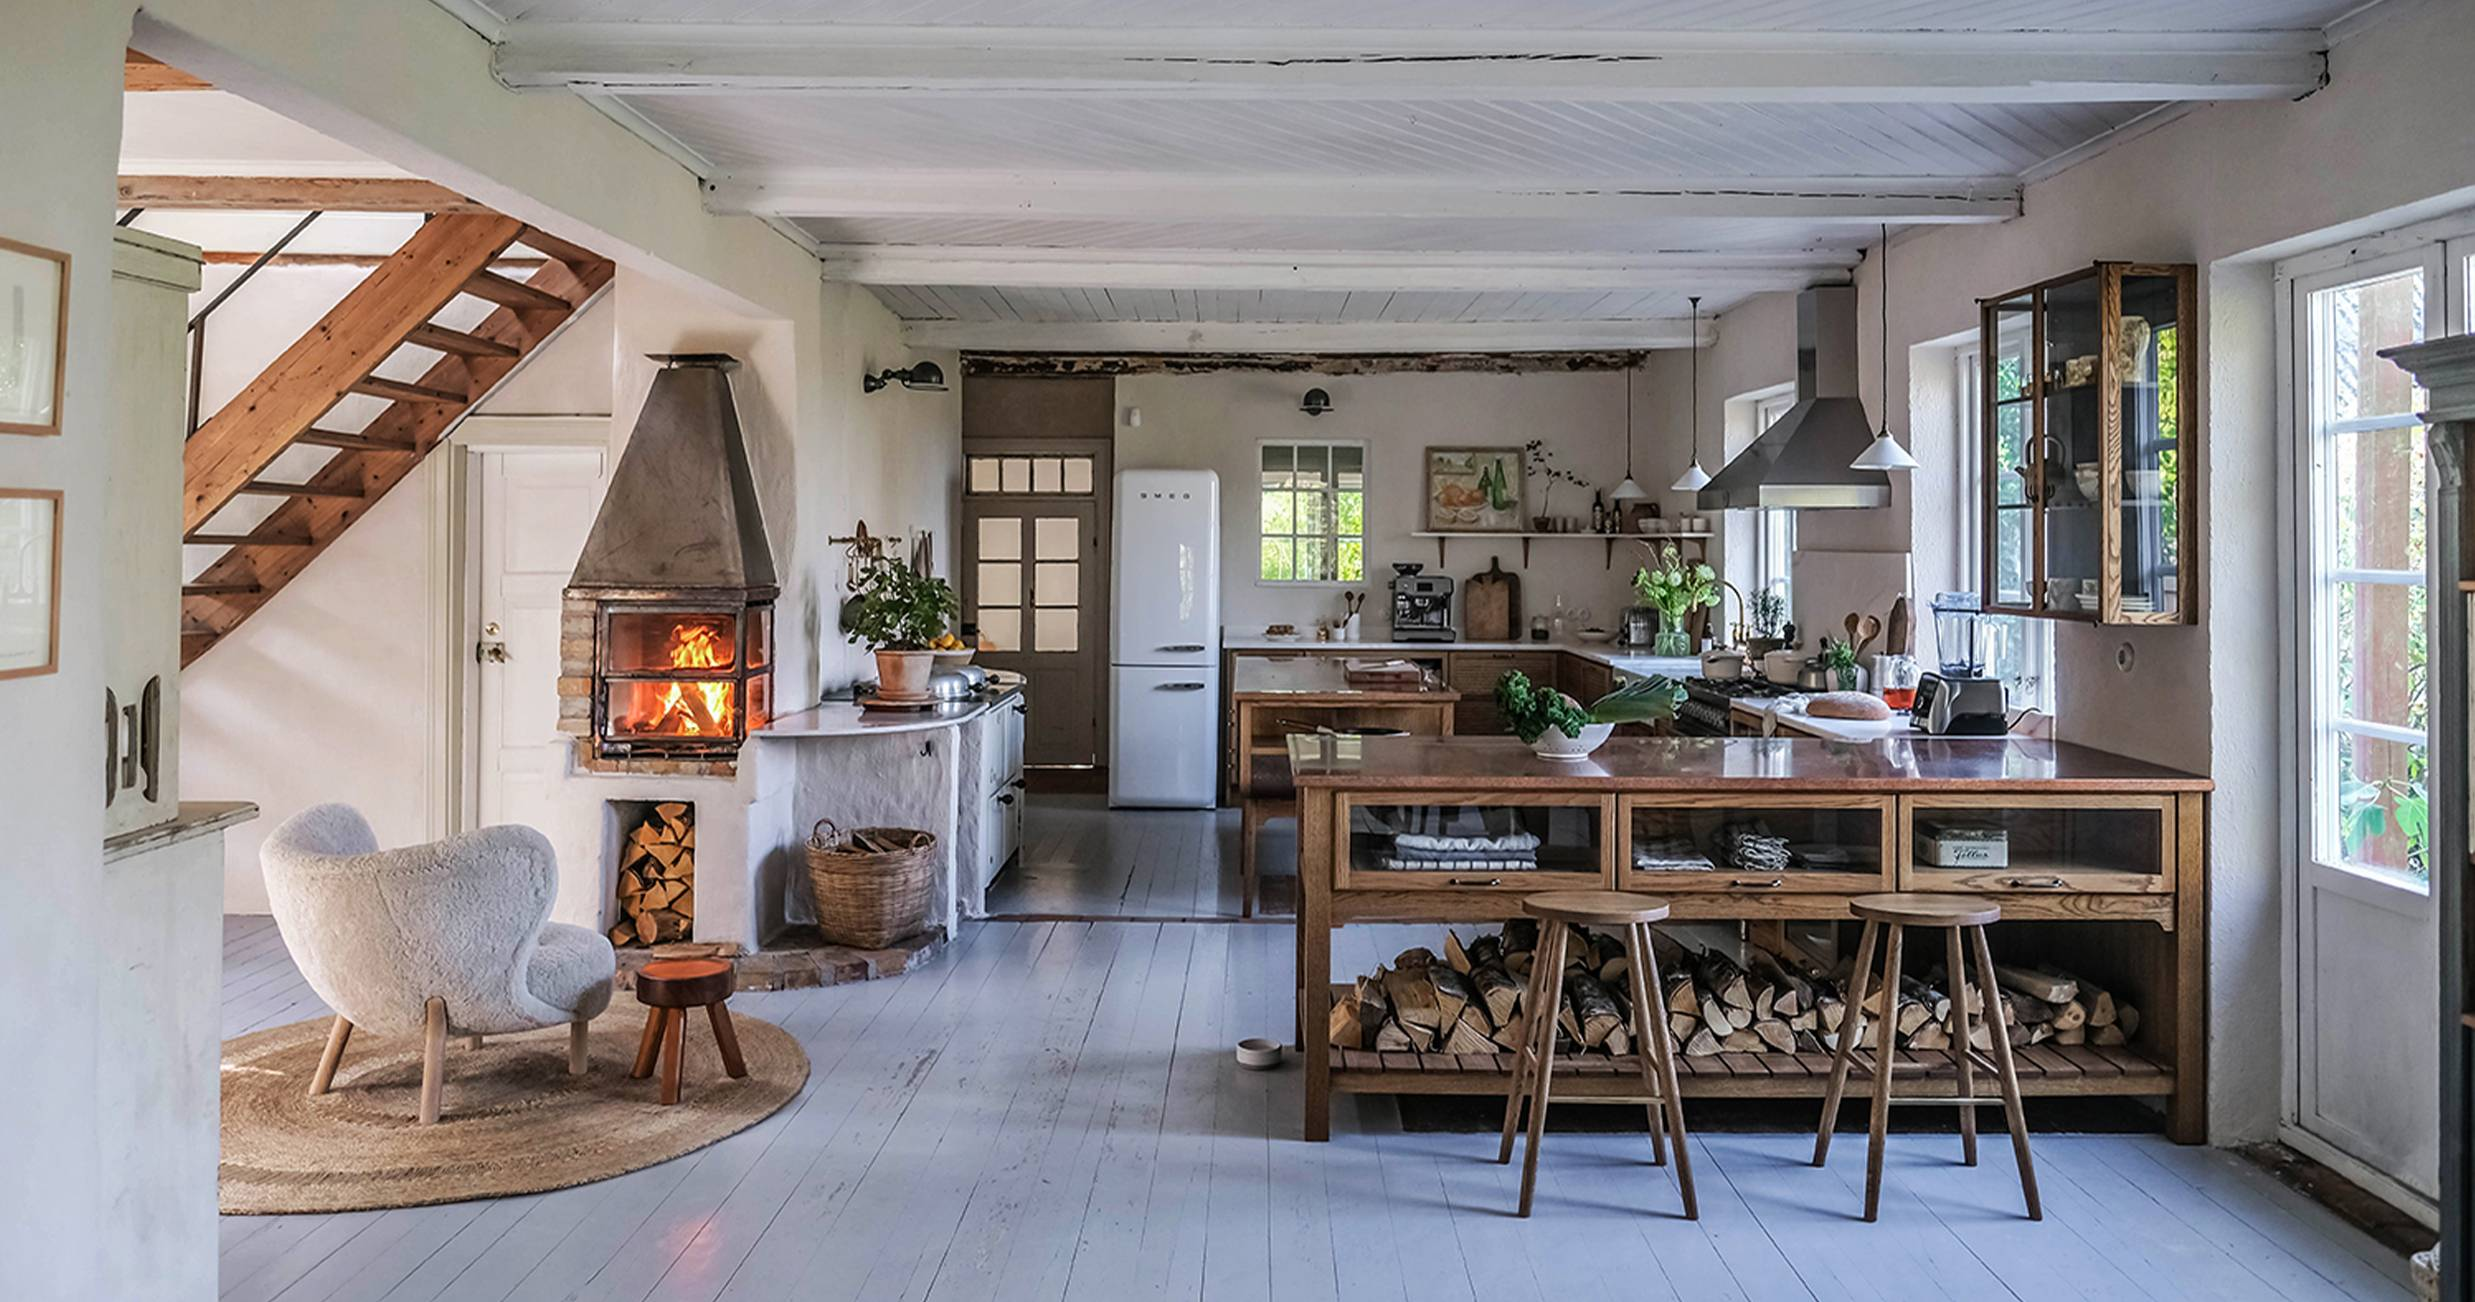 Logs under kitchen counter and metal fire pit